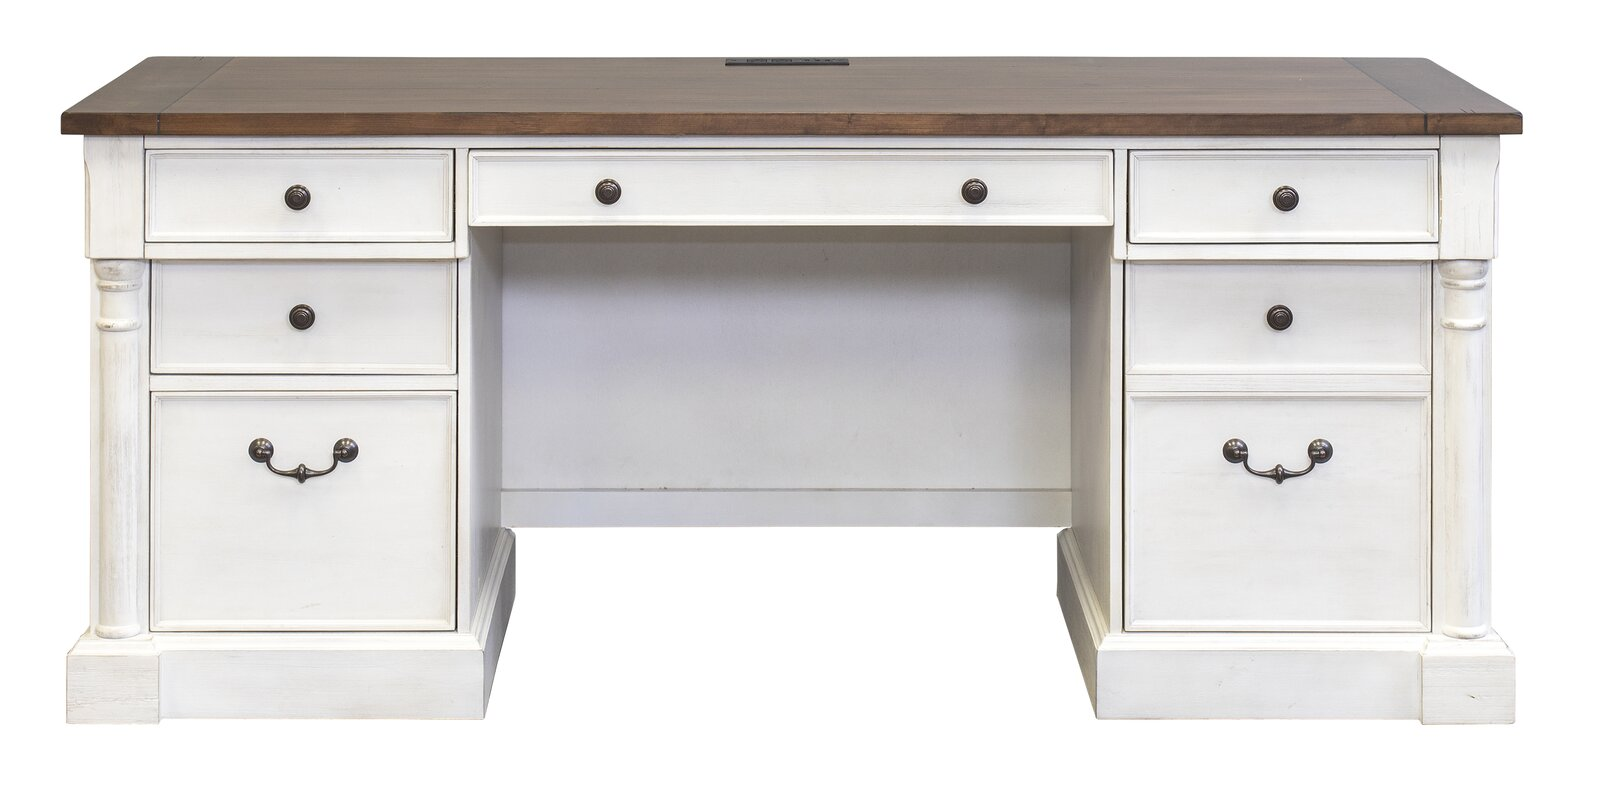 Chmura Executive Desk With Off-White Base